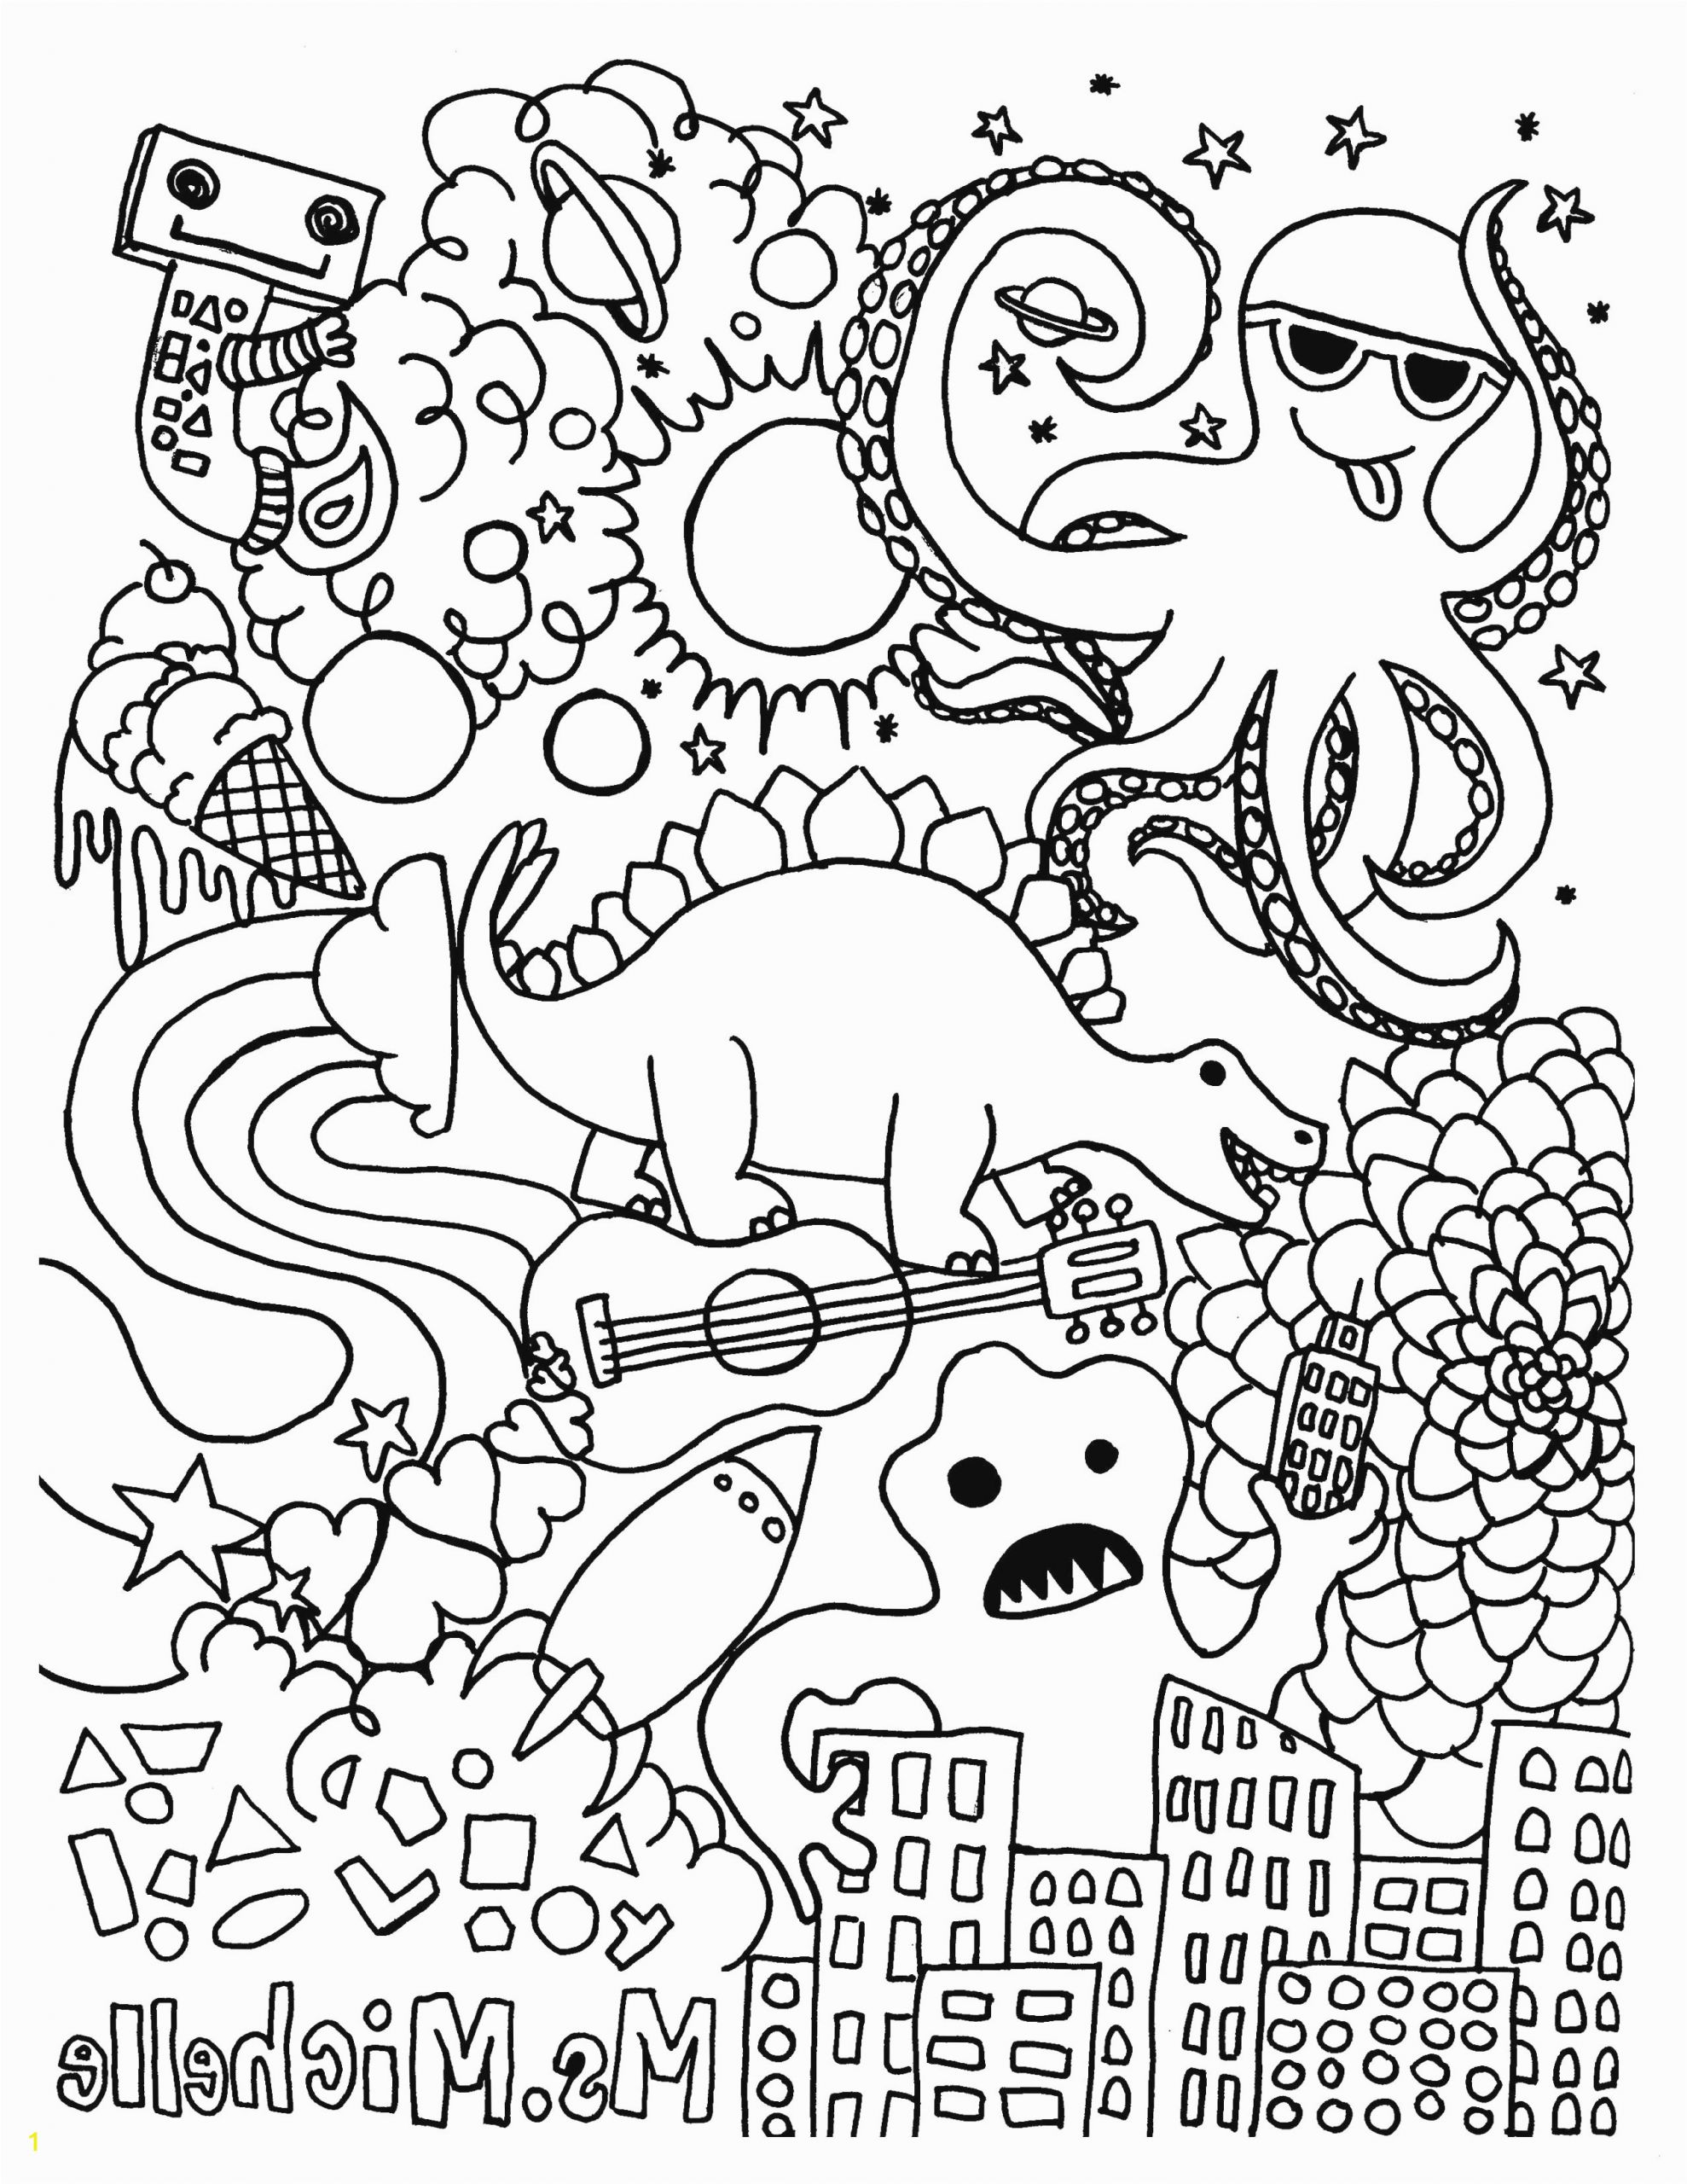 barbie coloring page free cool images free superhero coloring pages new free printable art 0 0d coloring of barbie coloring page free